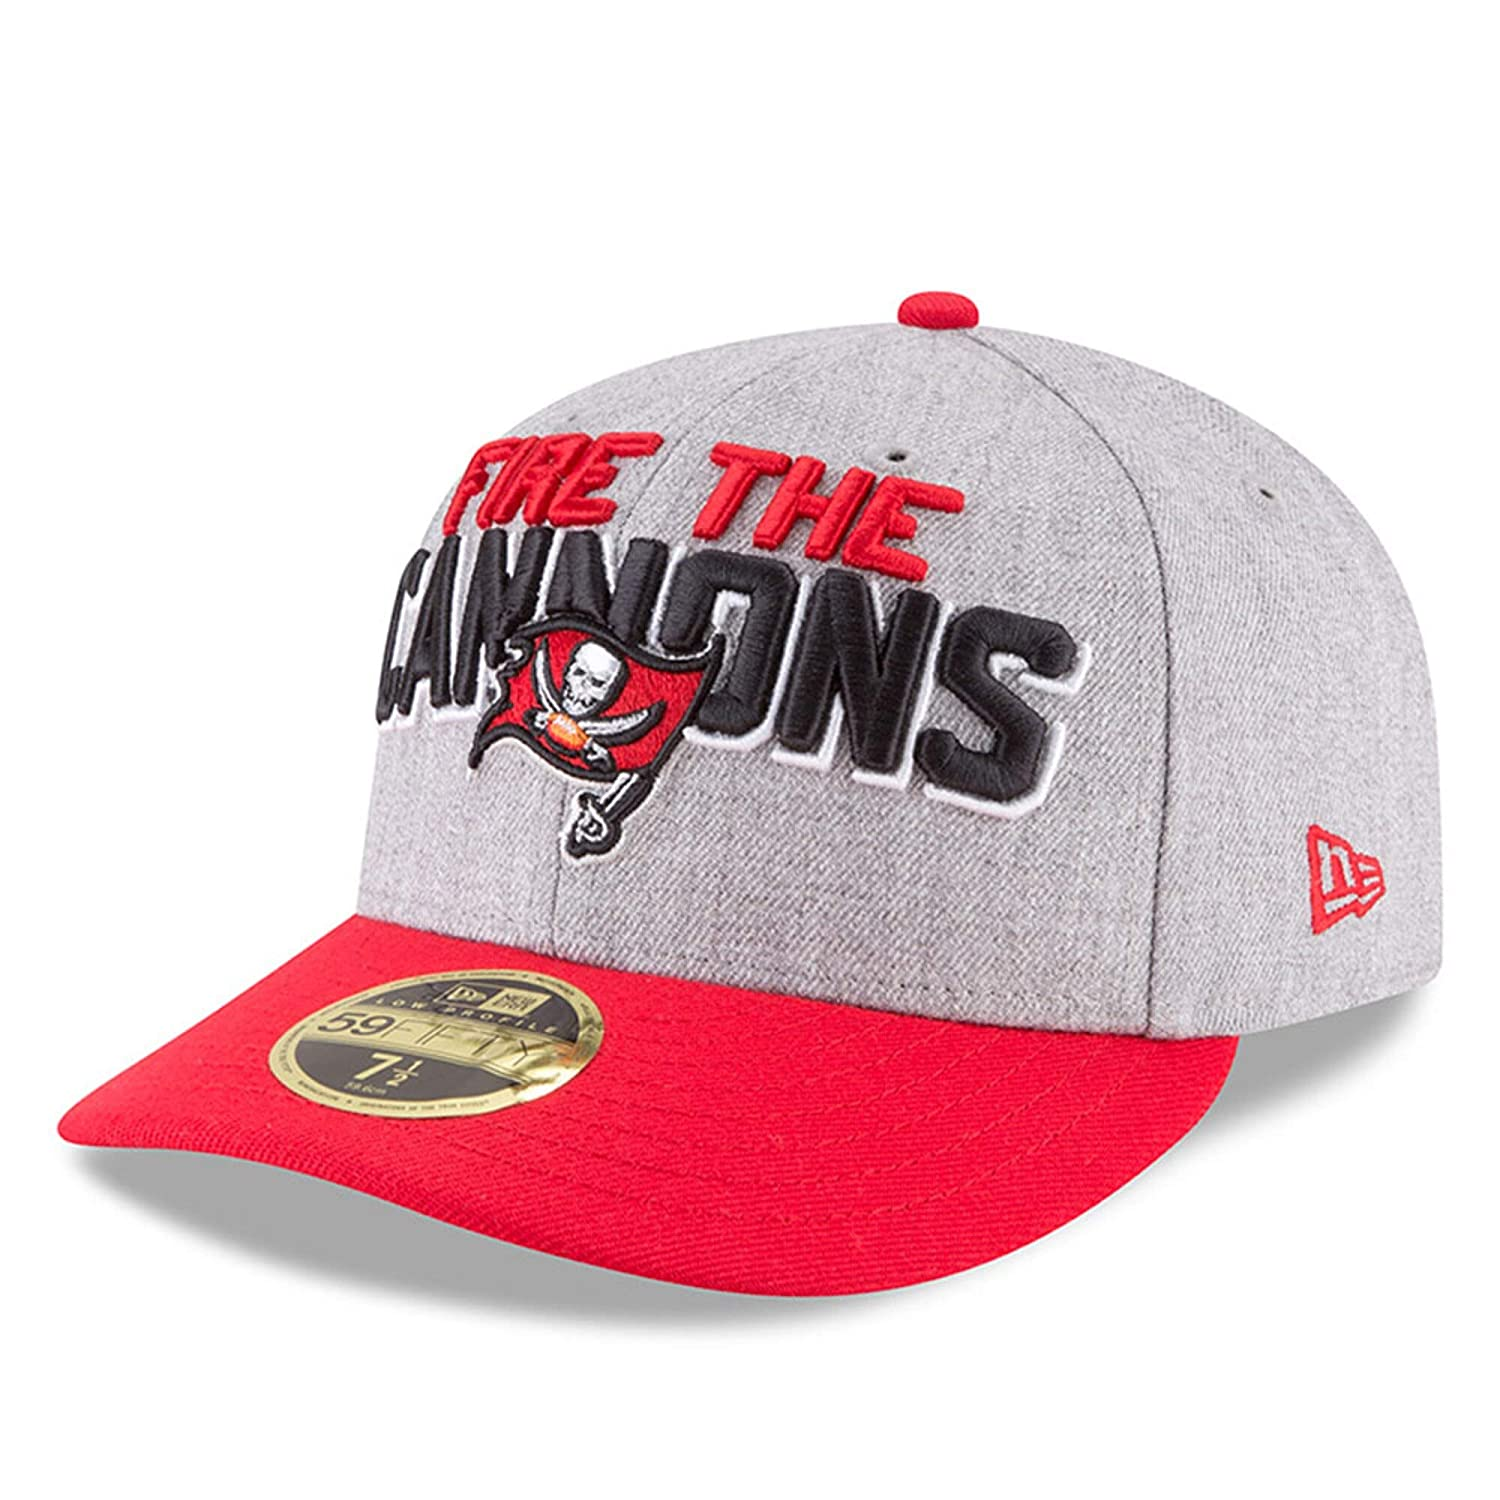 super popular 8fa0a b79e4 Amazon.com   New Era Tampa Bay Buccaneers 59Fifty Low Profile On Stage  Draft Fitted Hat (Size 8)   Clothing